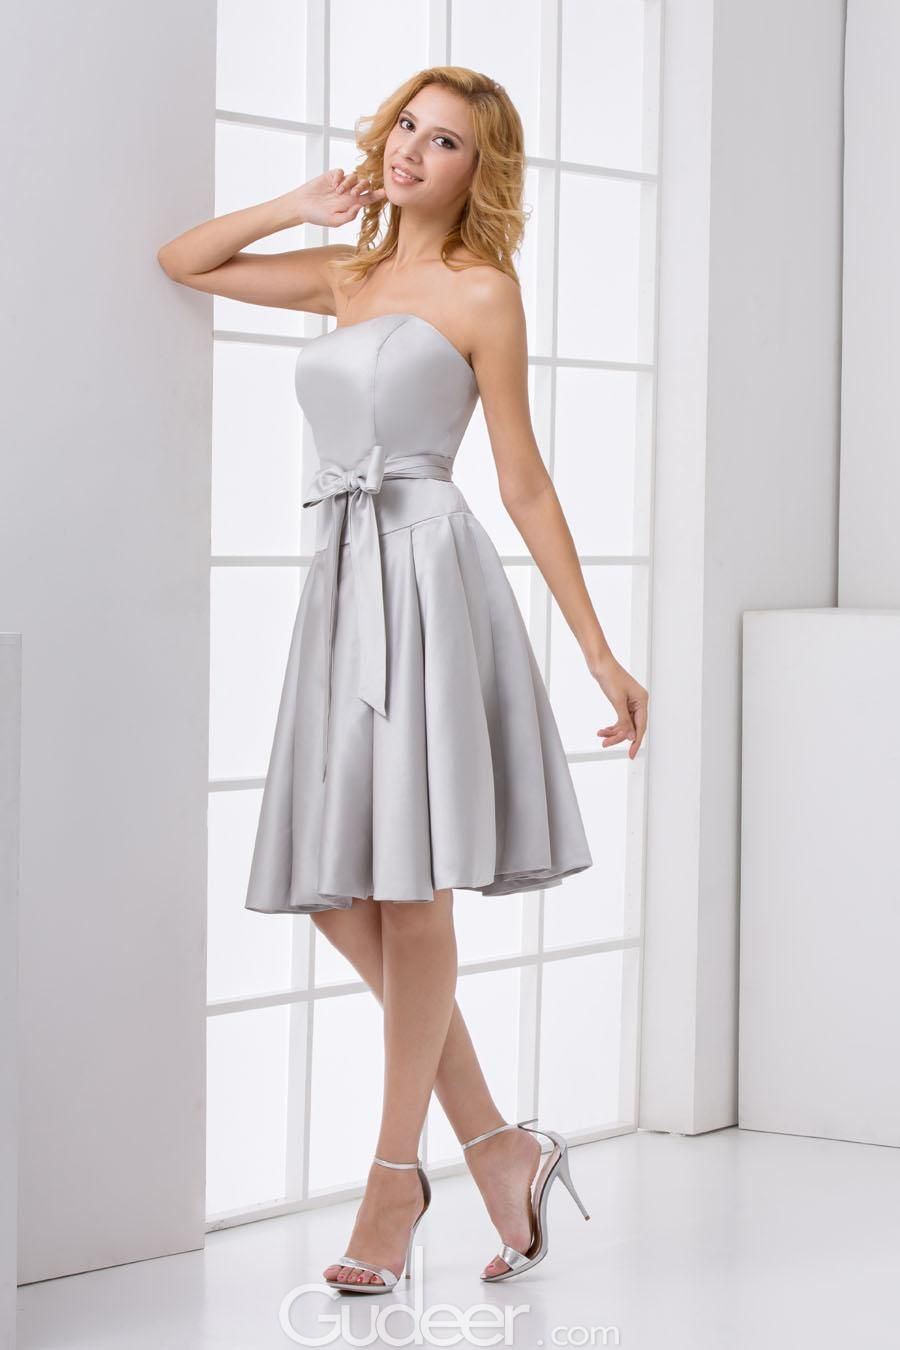 strapless-silver-satin-knee-length-a-line-bridesmaid-dress-1-1 ...